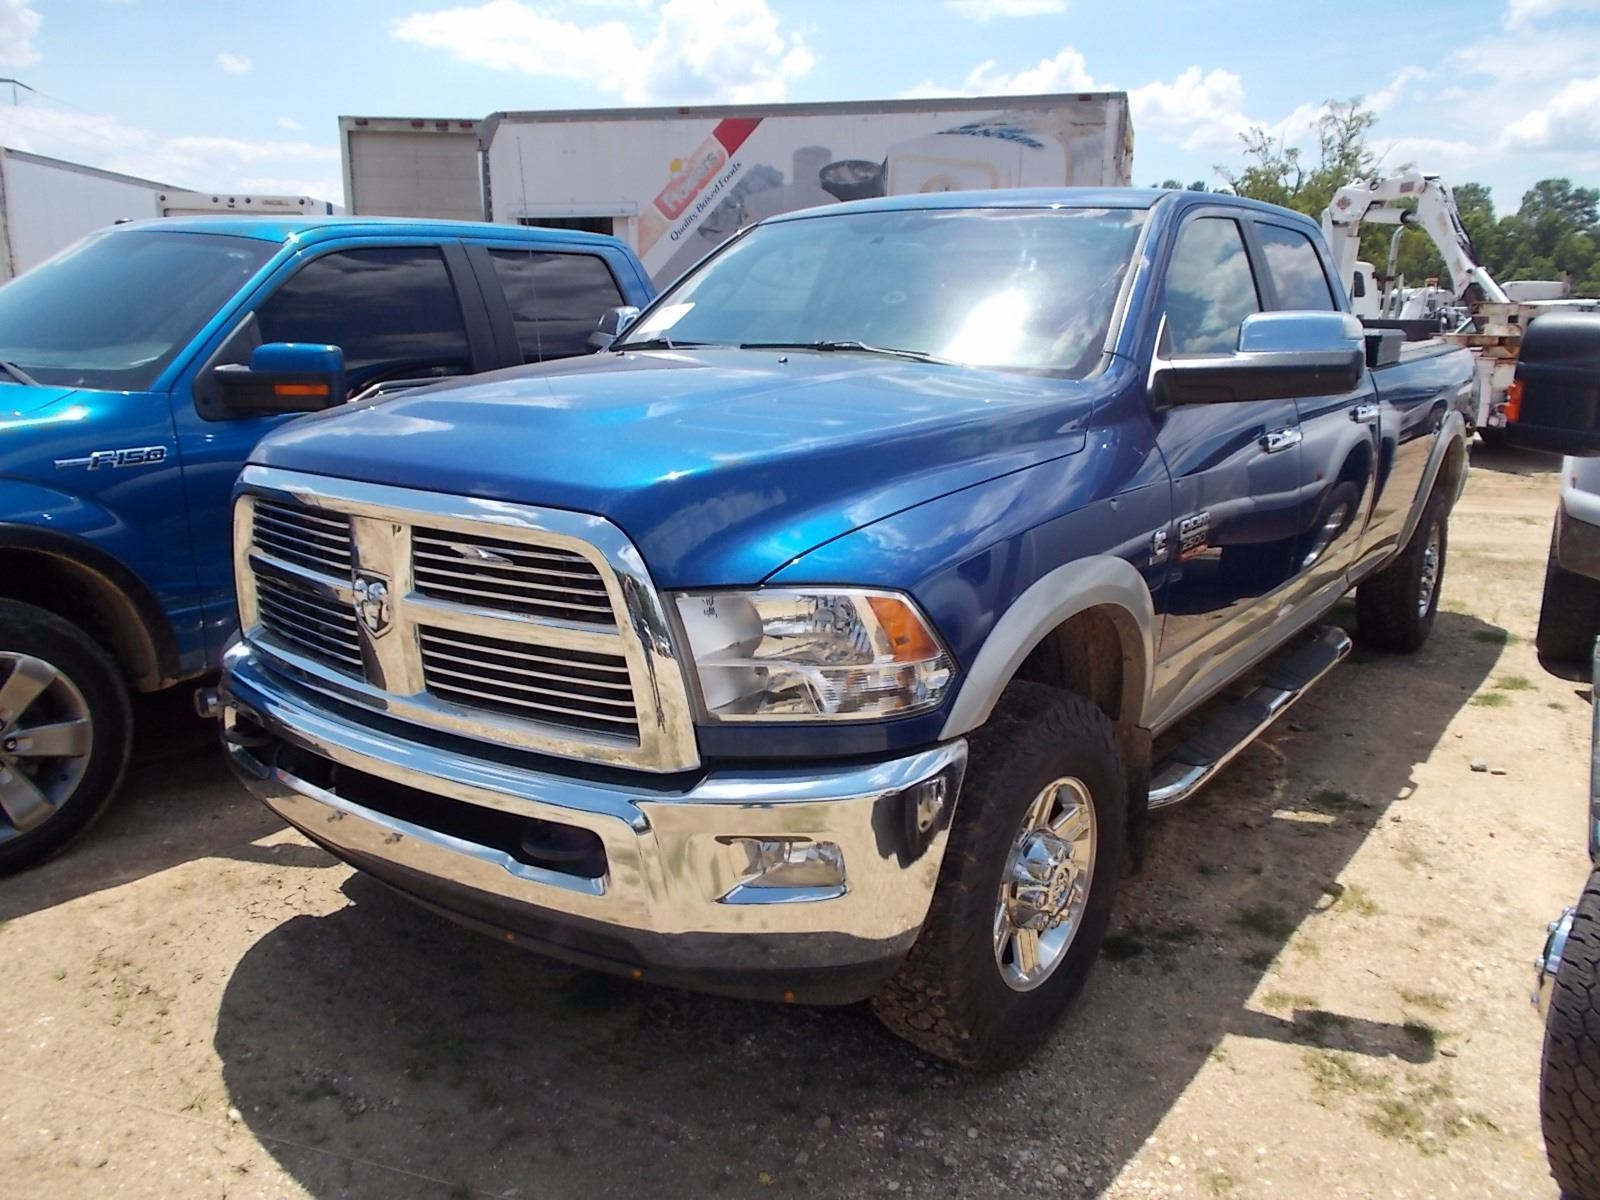 2010 dodge ram 2500hd pick up vin sn 3d7ut2clxag172050. Black Bedroom Furniture Sets. Home Design Ideas